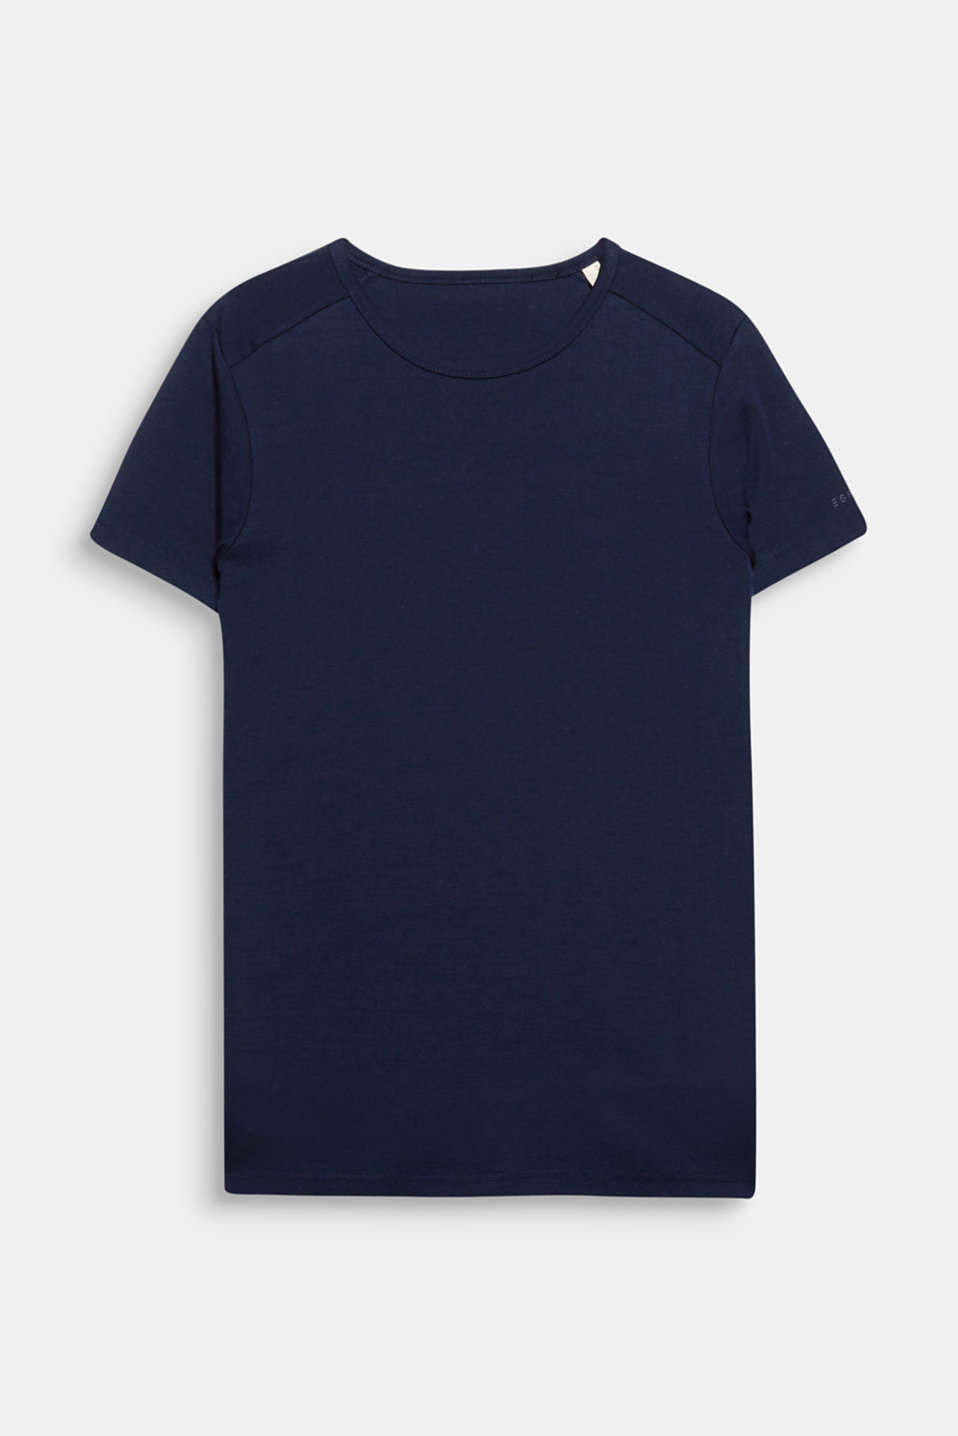 A reliable fashion basic: ribbed jersey T-shirt in 100% cotton